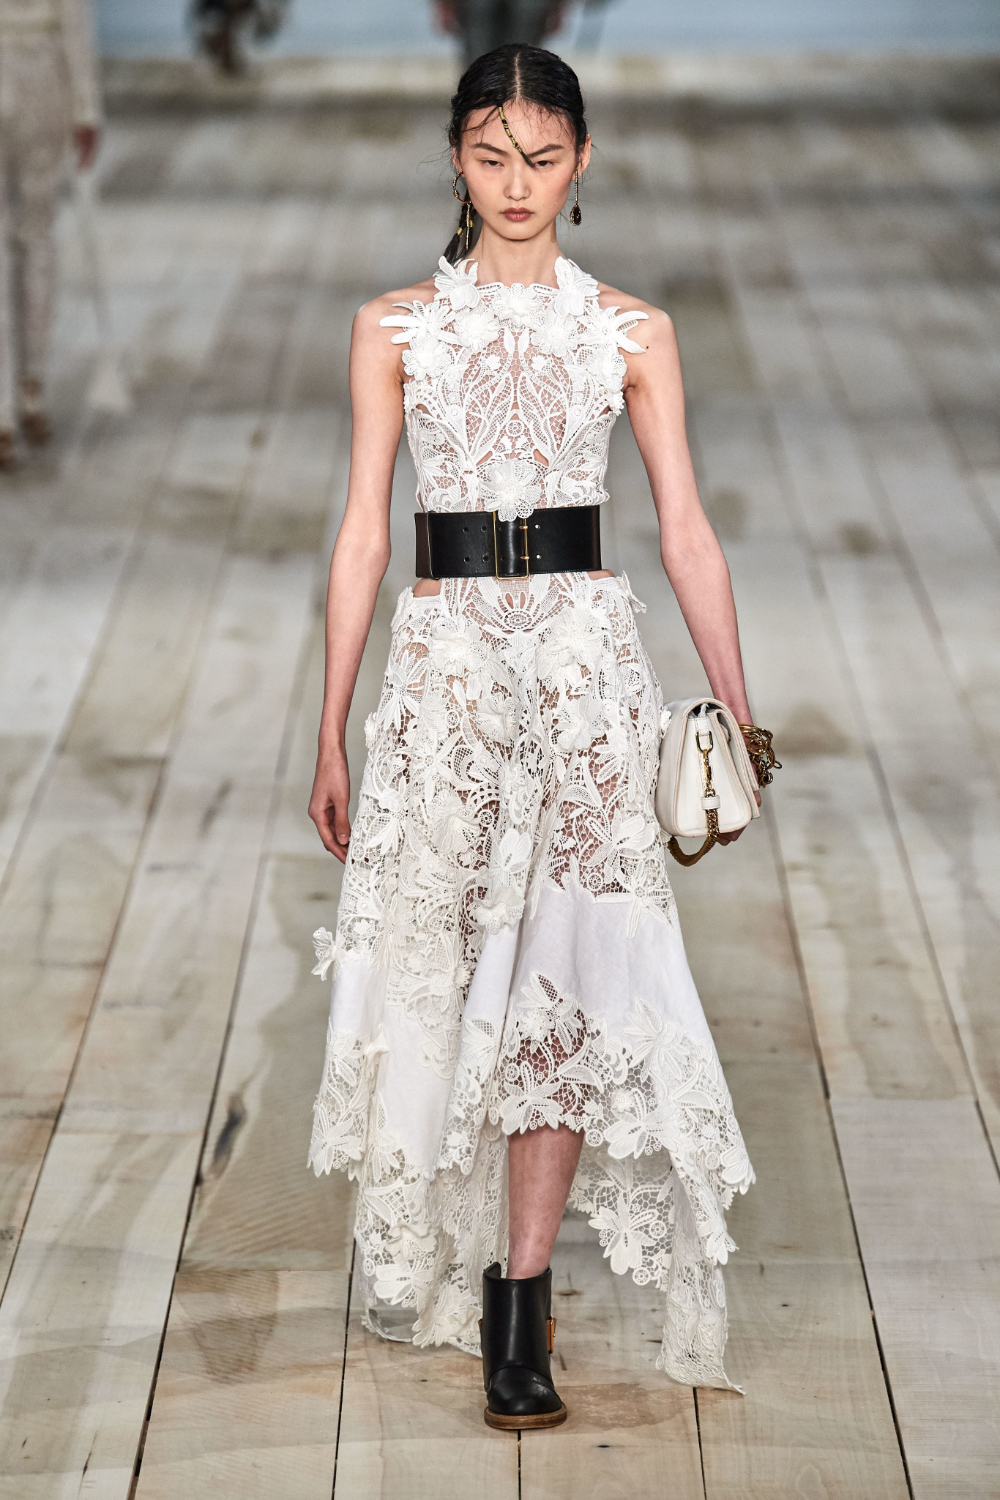 Alexander McQueen Spring 2020 Ready to Wear Fashion Show in